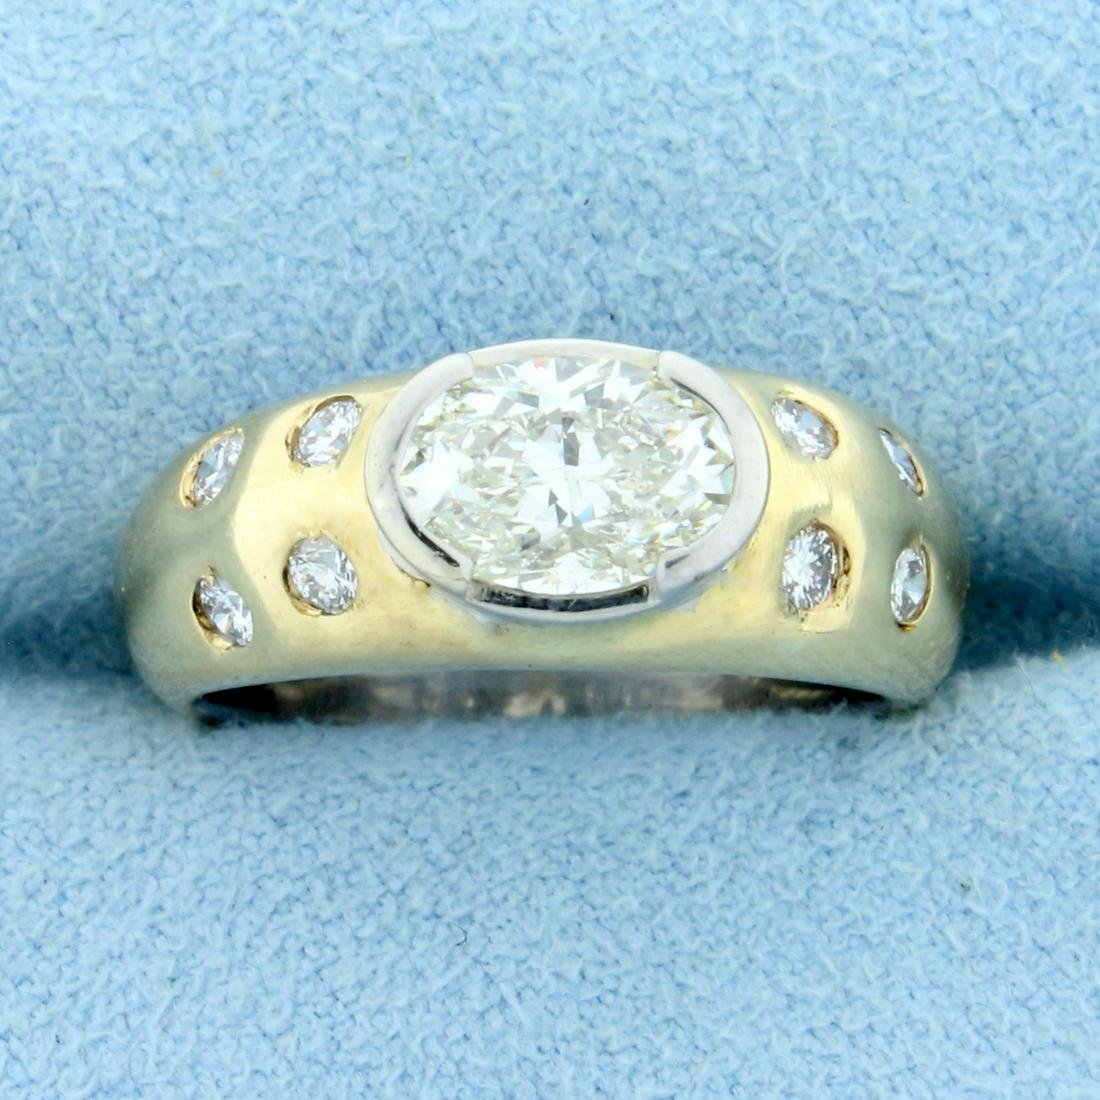 1.5ct TW Oval Diamond Engagement Ring in 14K Yellow and